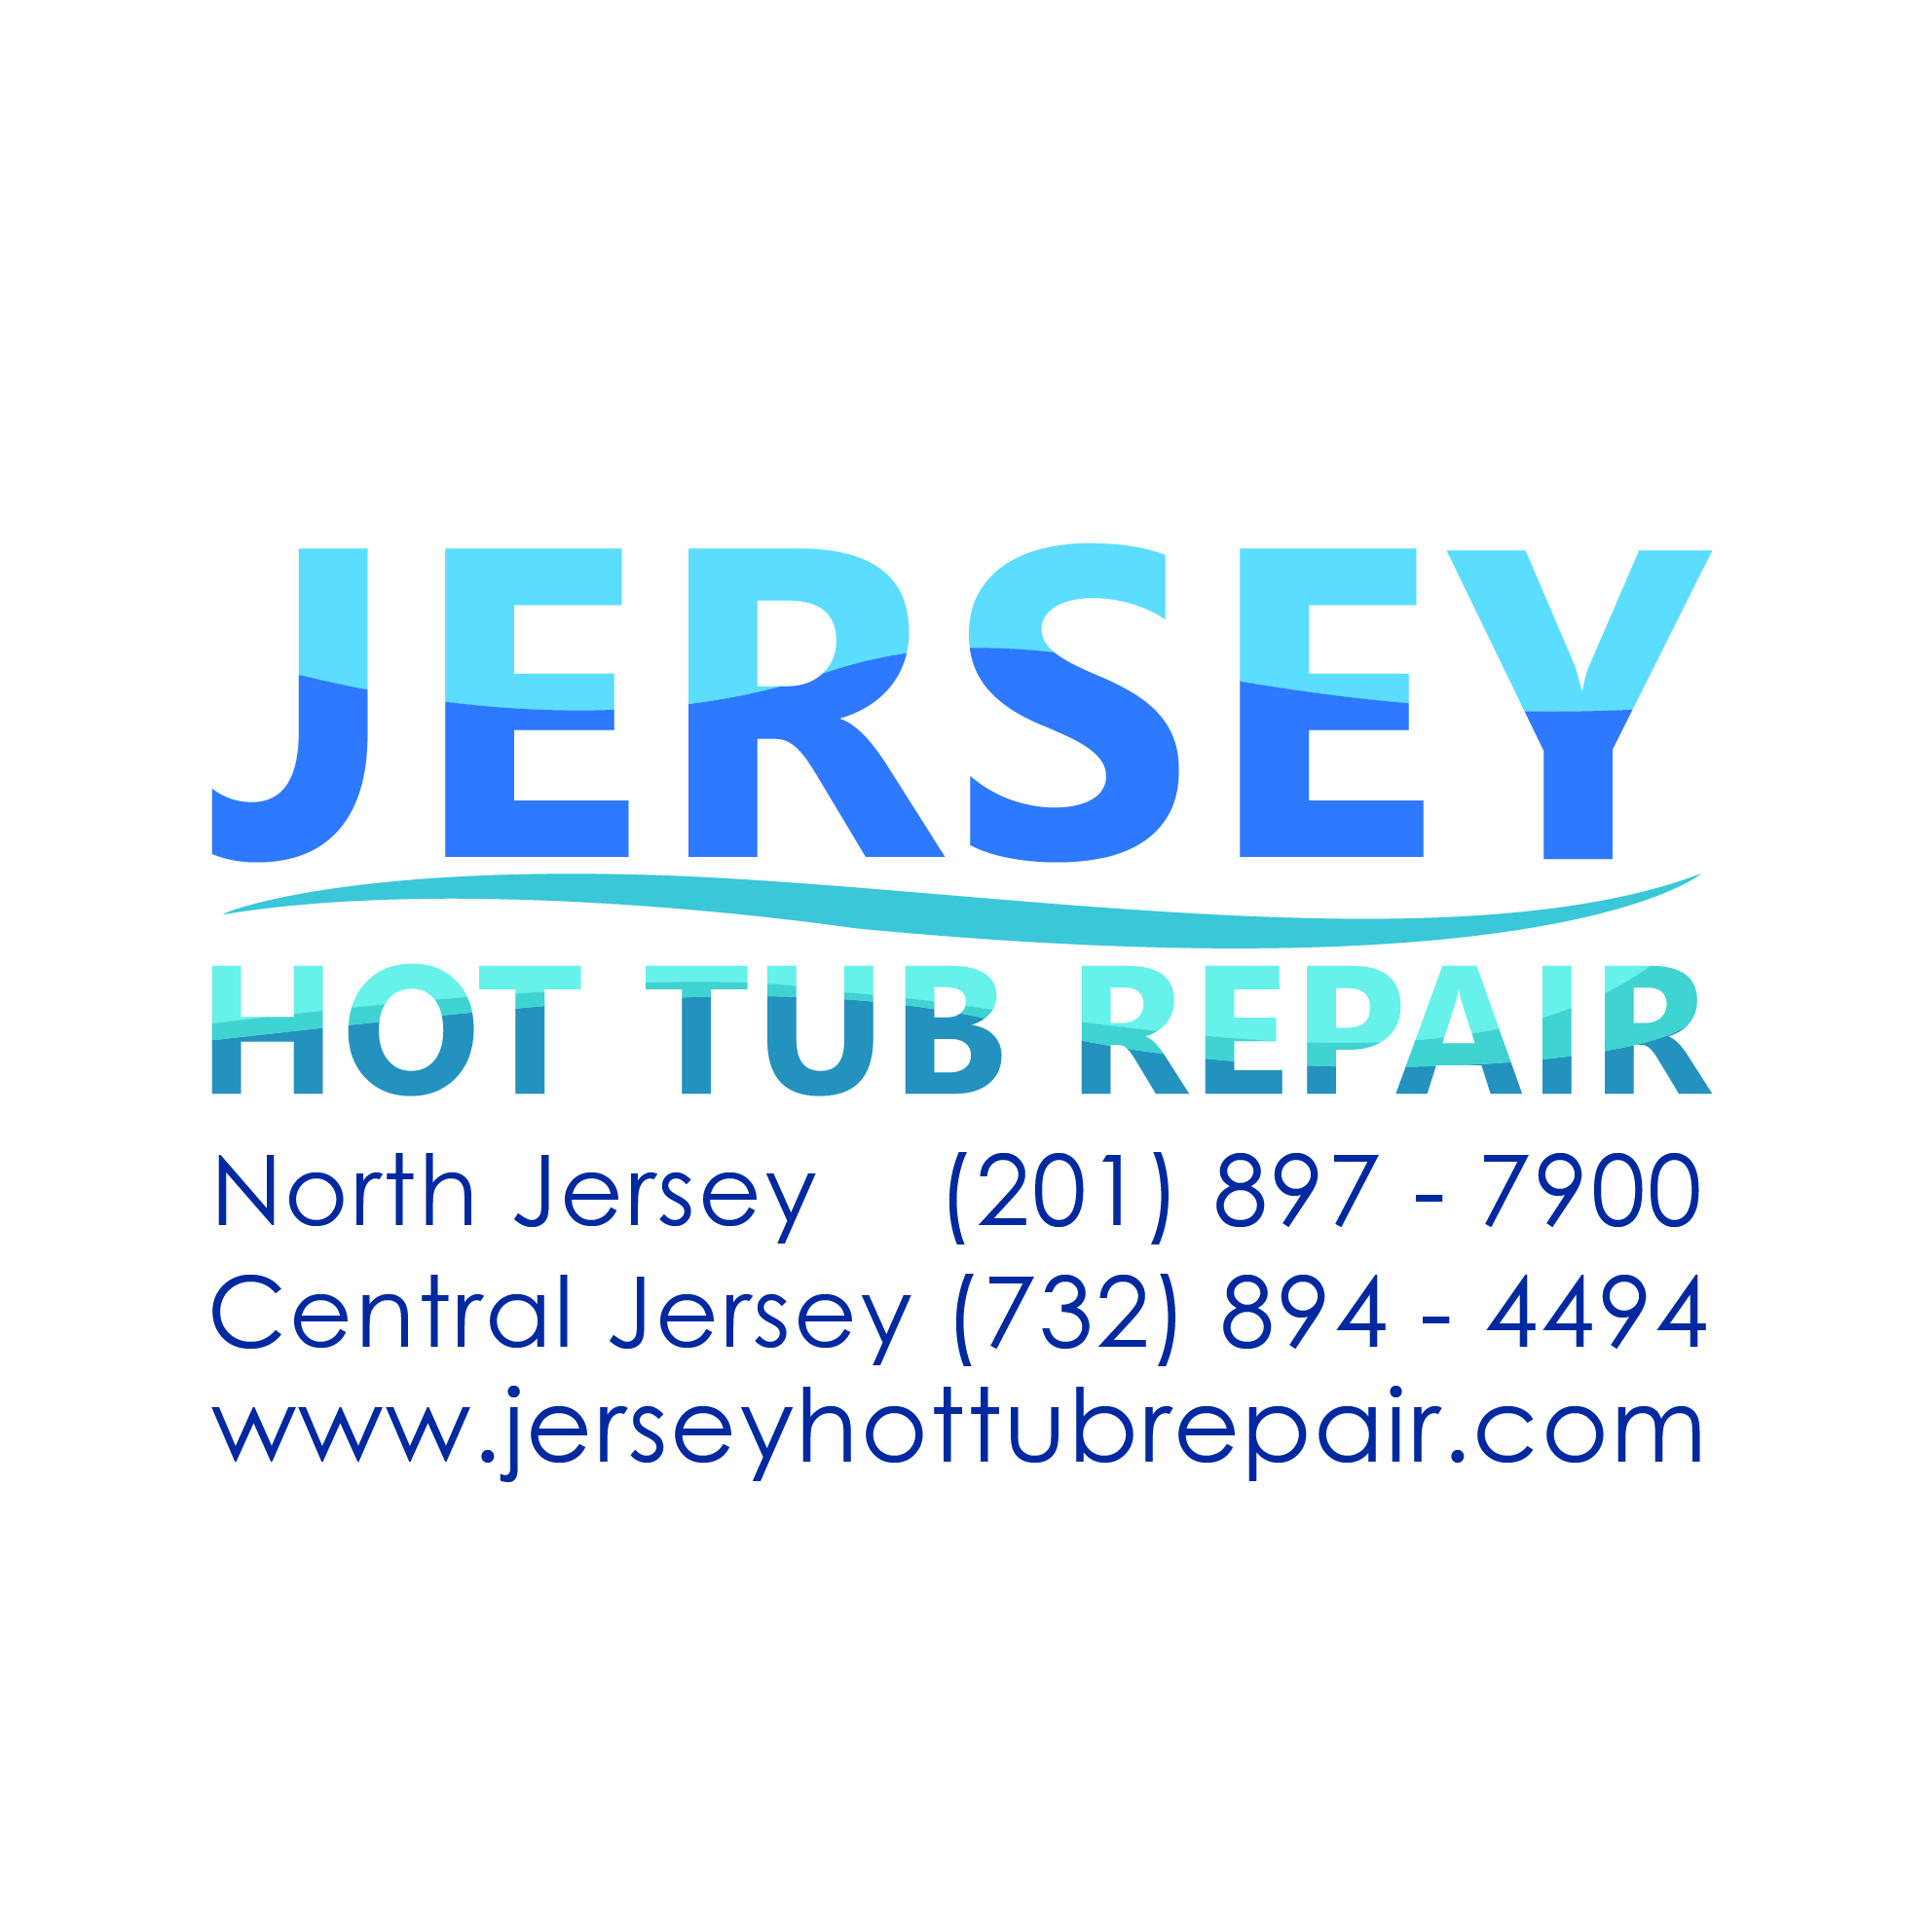 15 Jersey Hot Tub Repair